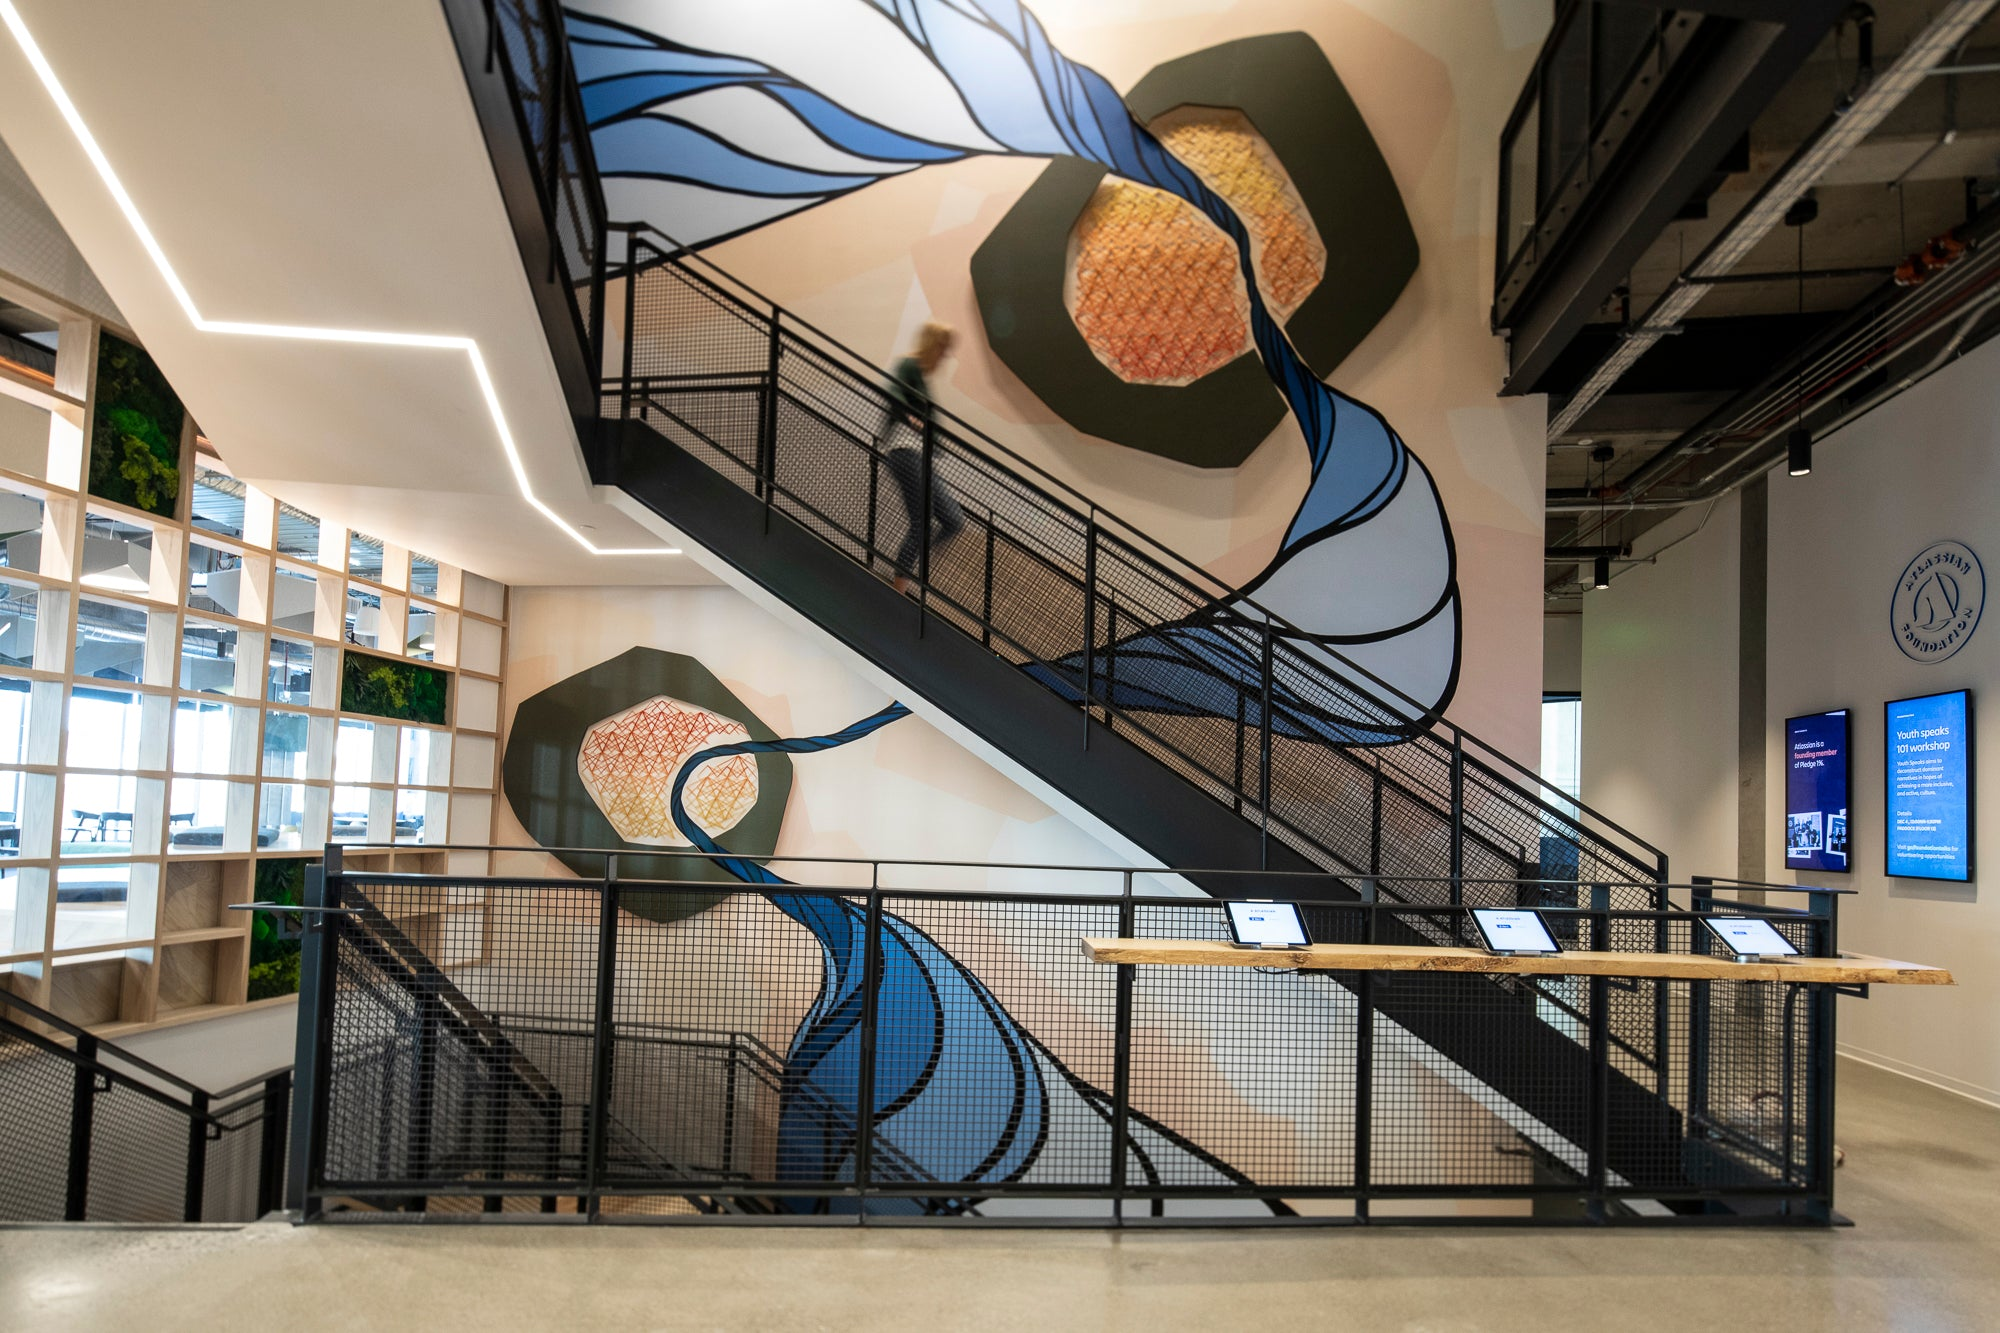 Mural Artist Strider Patton is a contemporary San Francisco based artists known for abstract murals, sculptures and installations